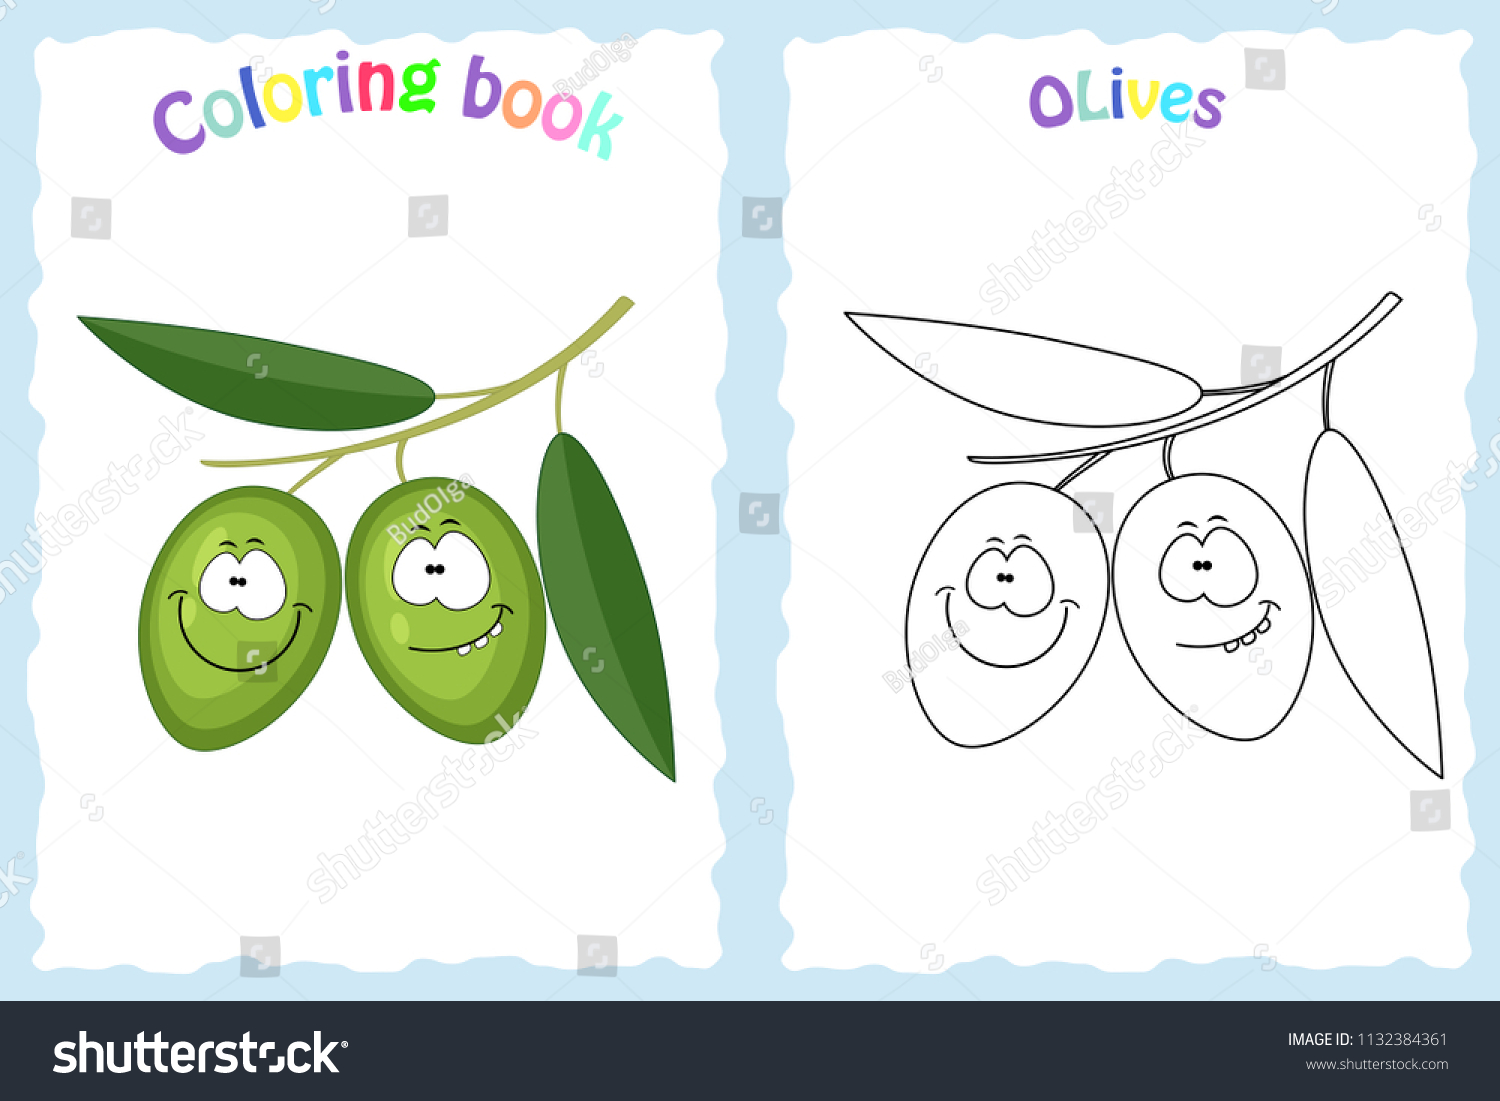 Coloring Book Page Children Colorful Olives Stock Vector 1132384361 ...